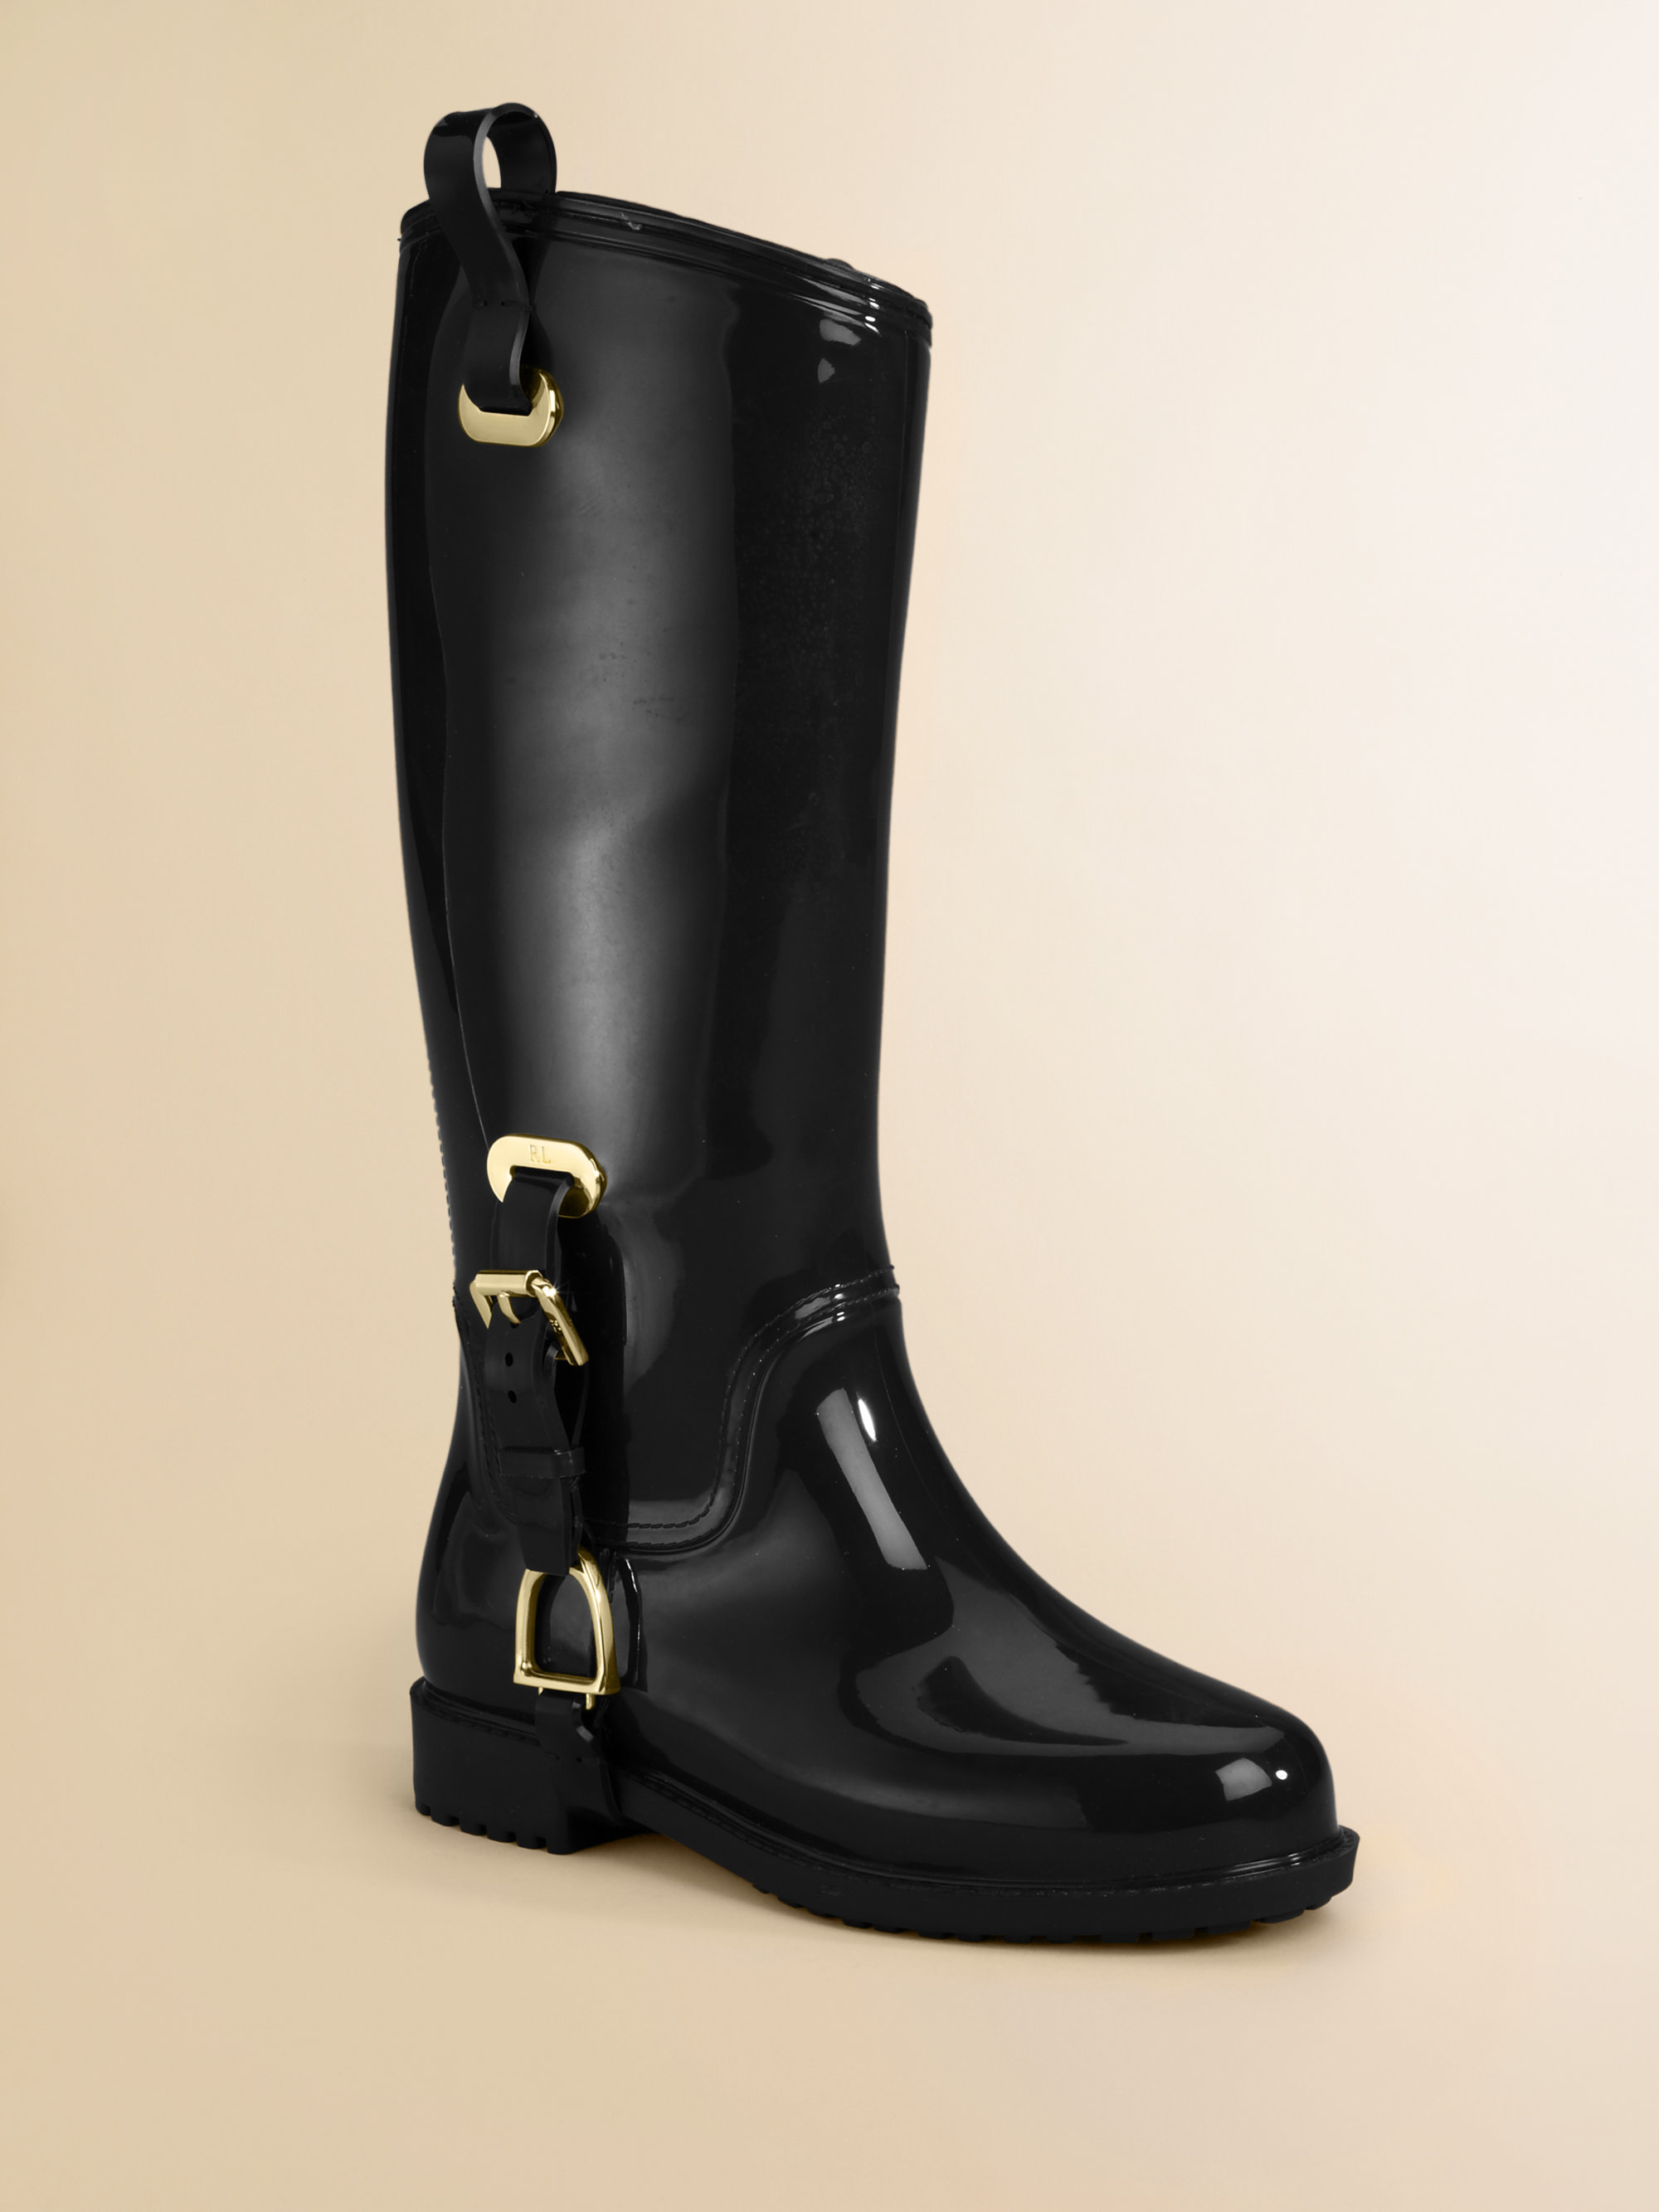 Ralph lauren Kids Glossy Rainboots in Black | Lyst